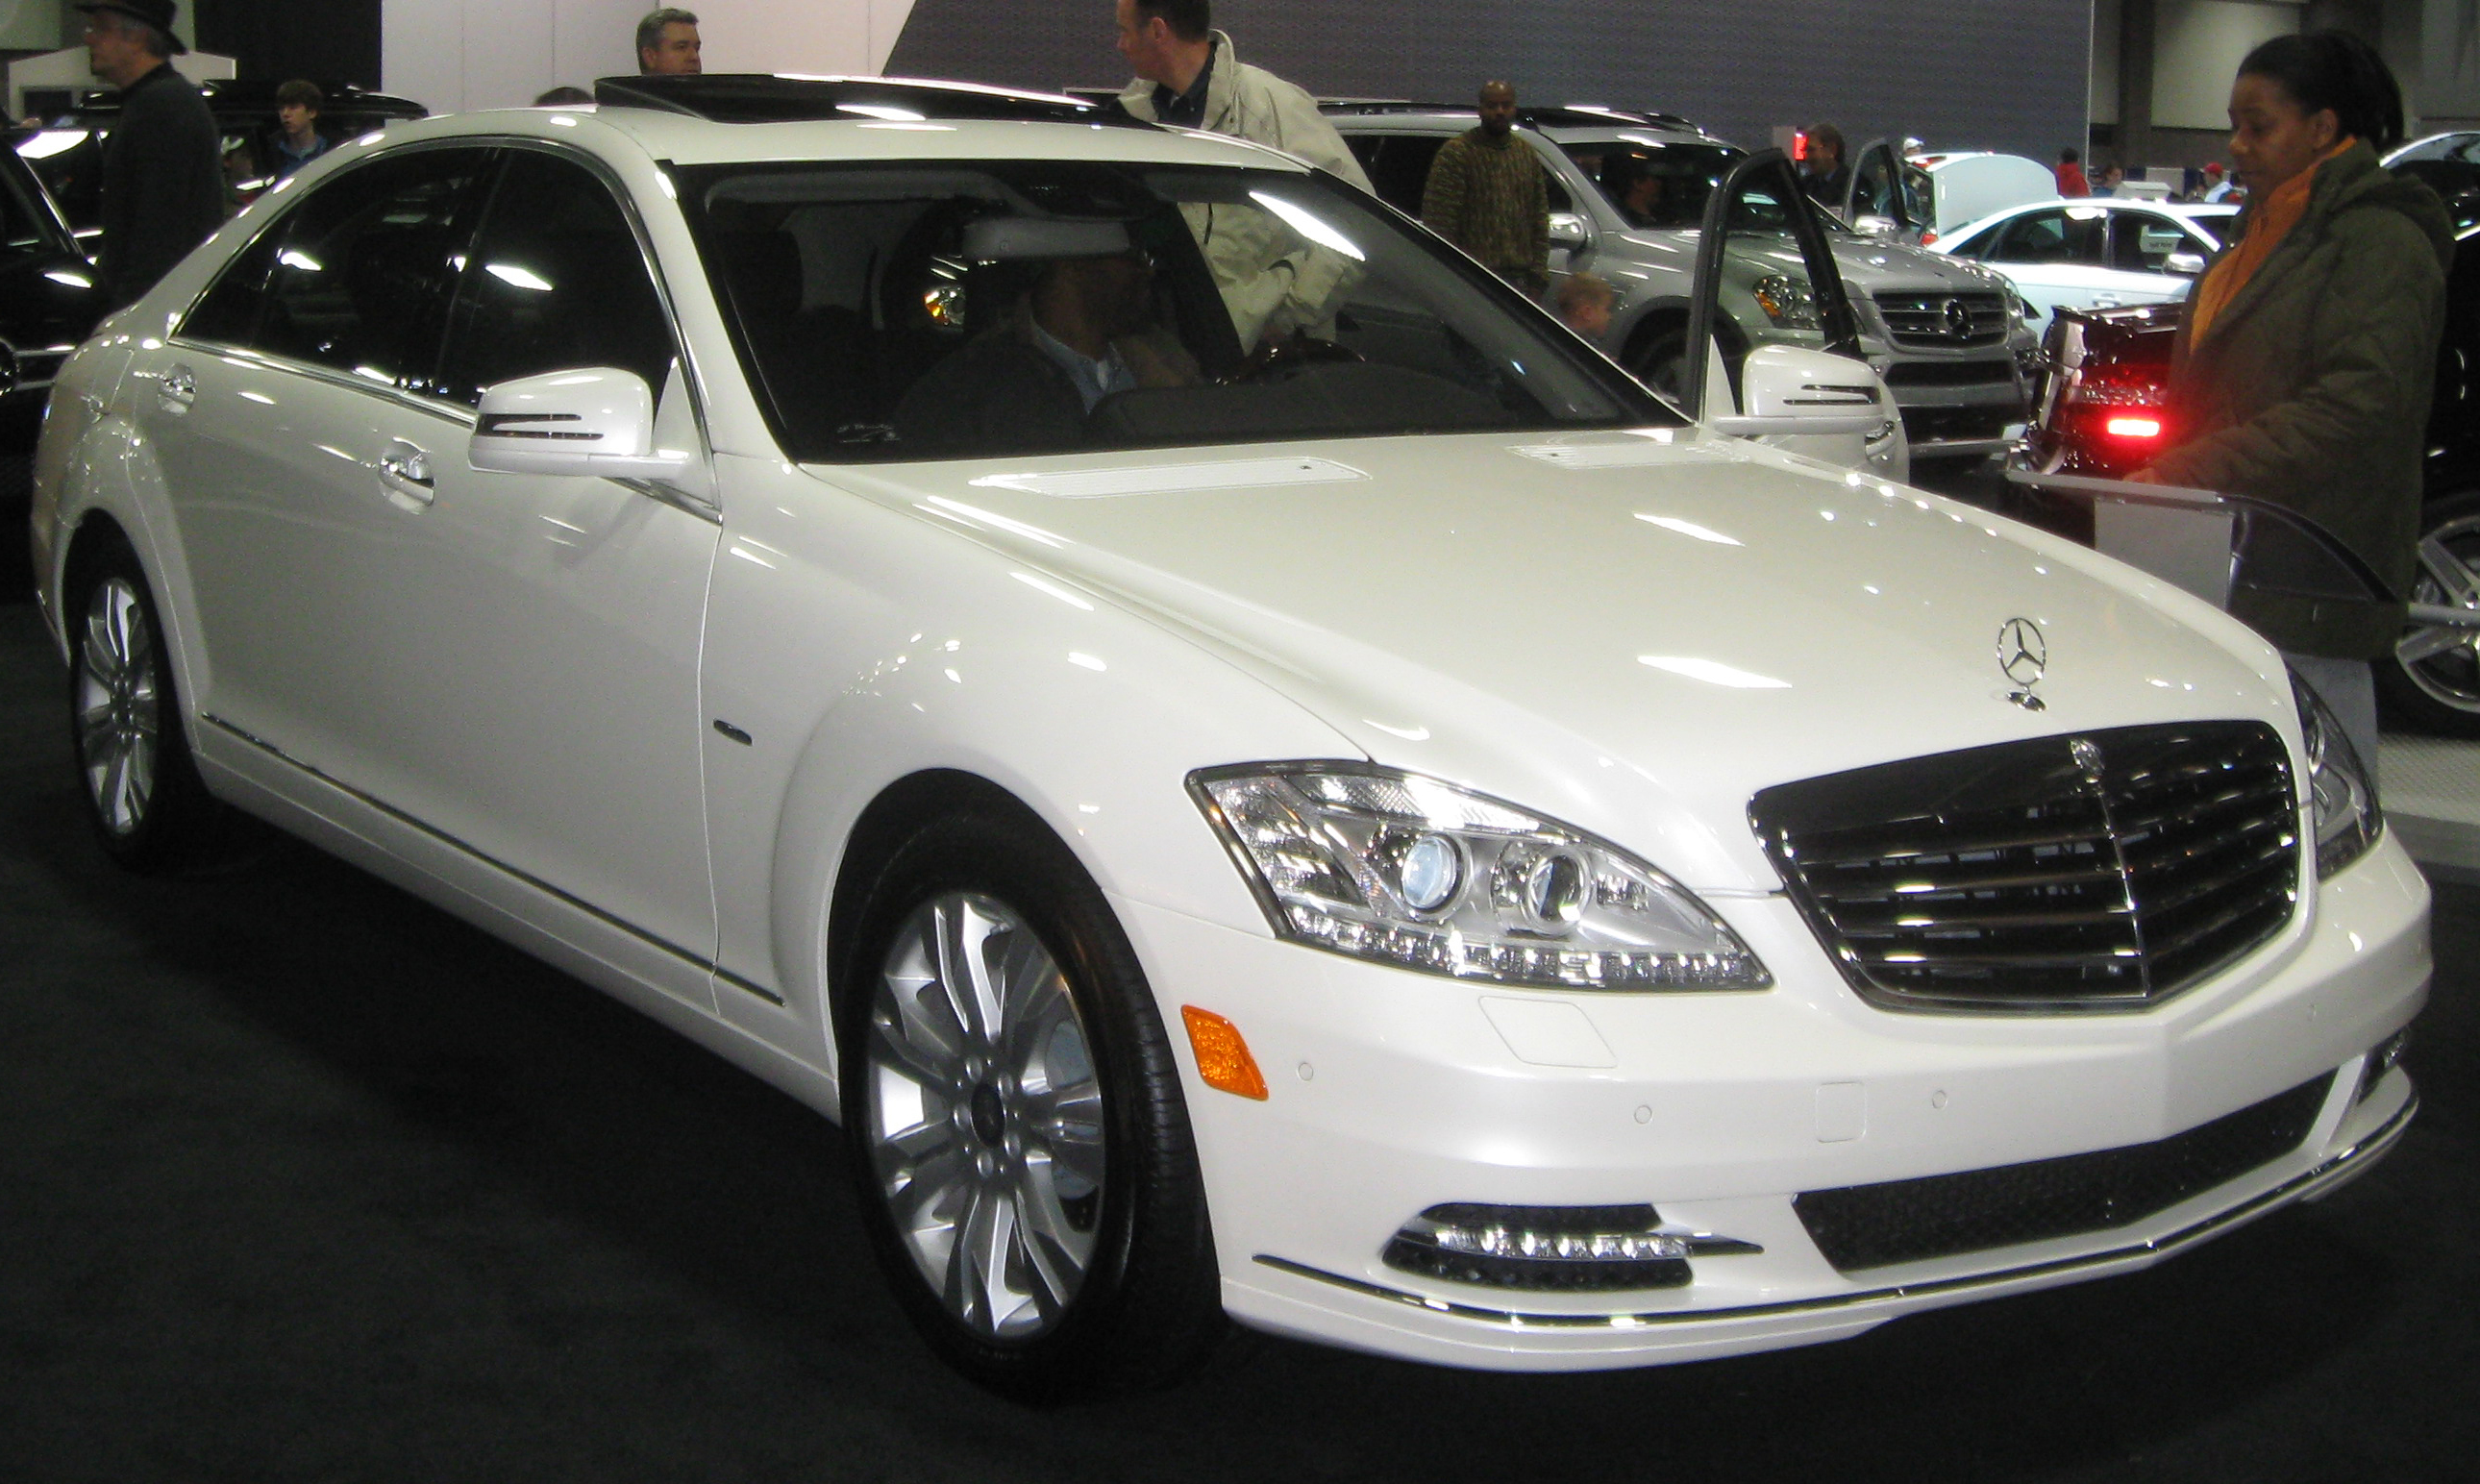 Mercedes benz w221 for 2010 mercedes benz s400 hybrid for sale